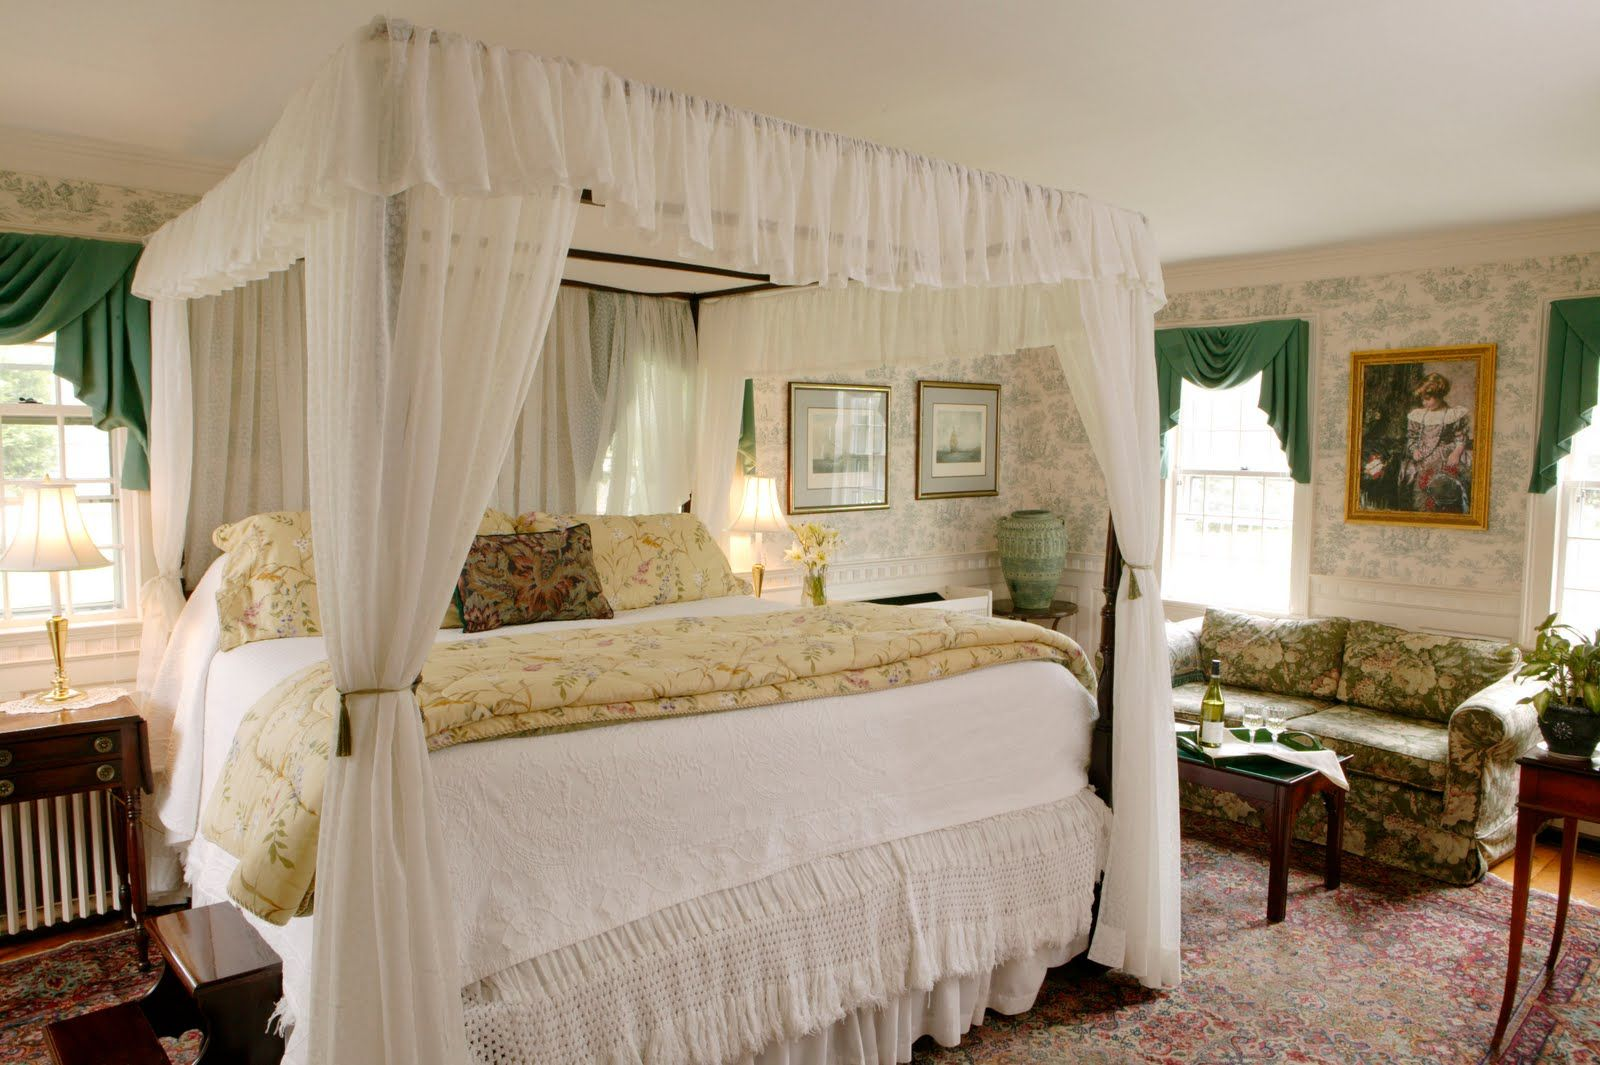 Romantic Canopy Bedroom Ideas bedroom interior beautiful classy art decoration and inspirational